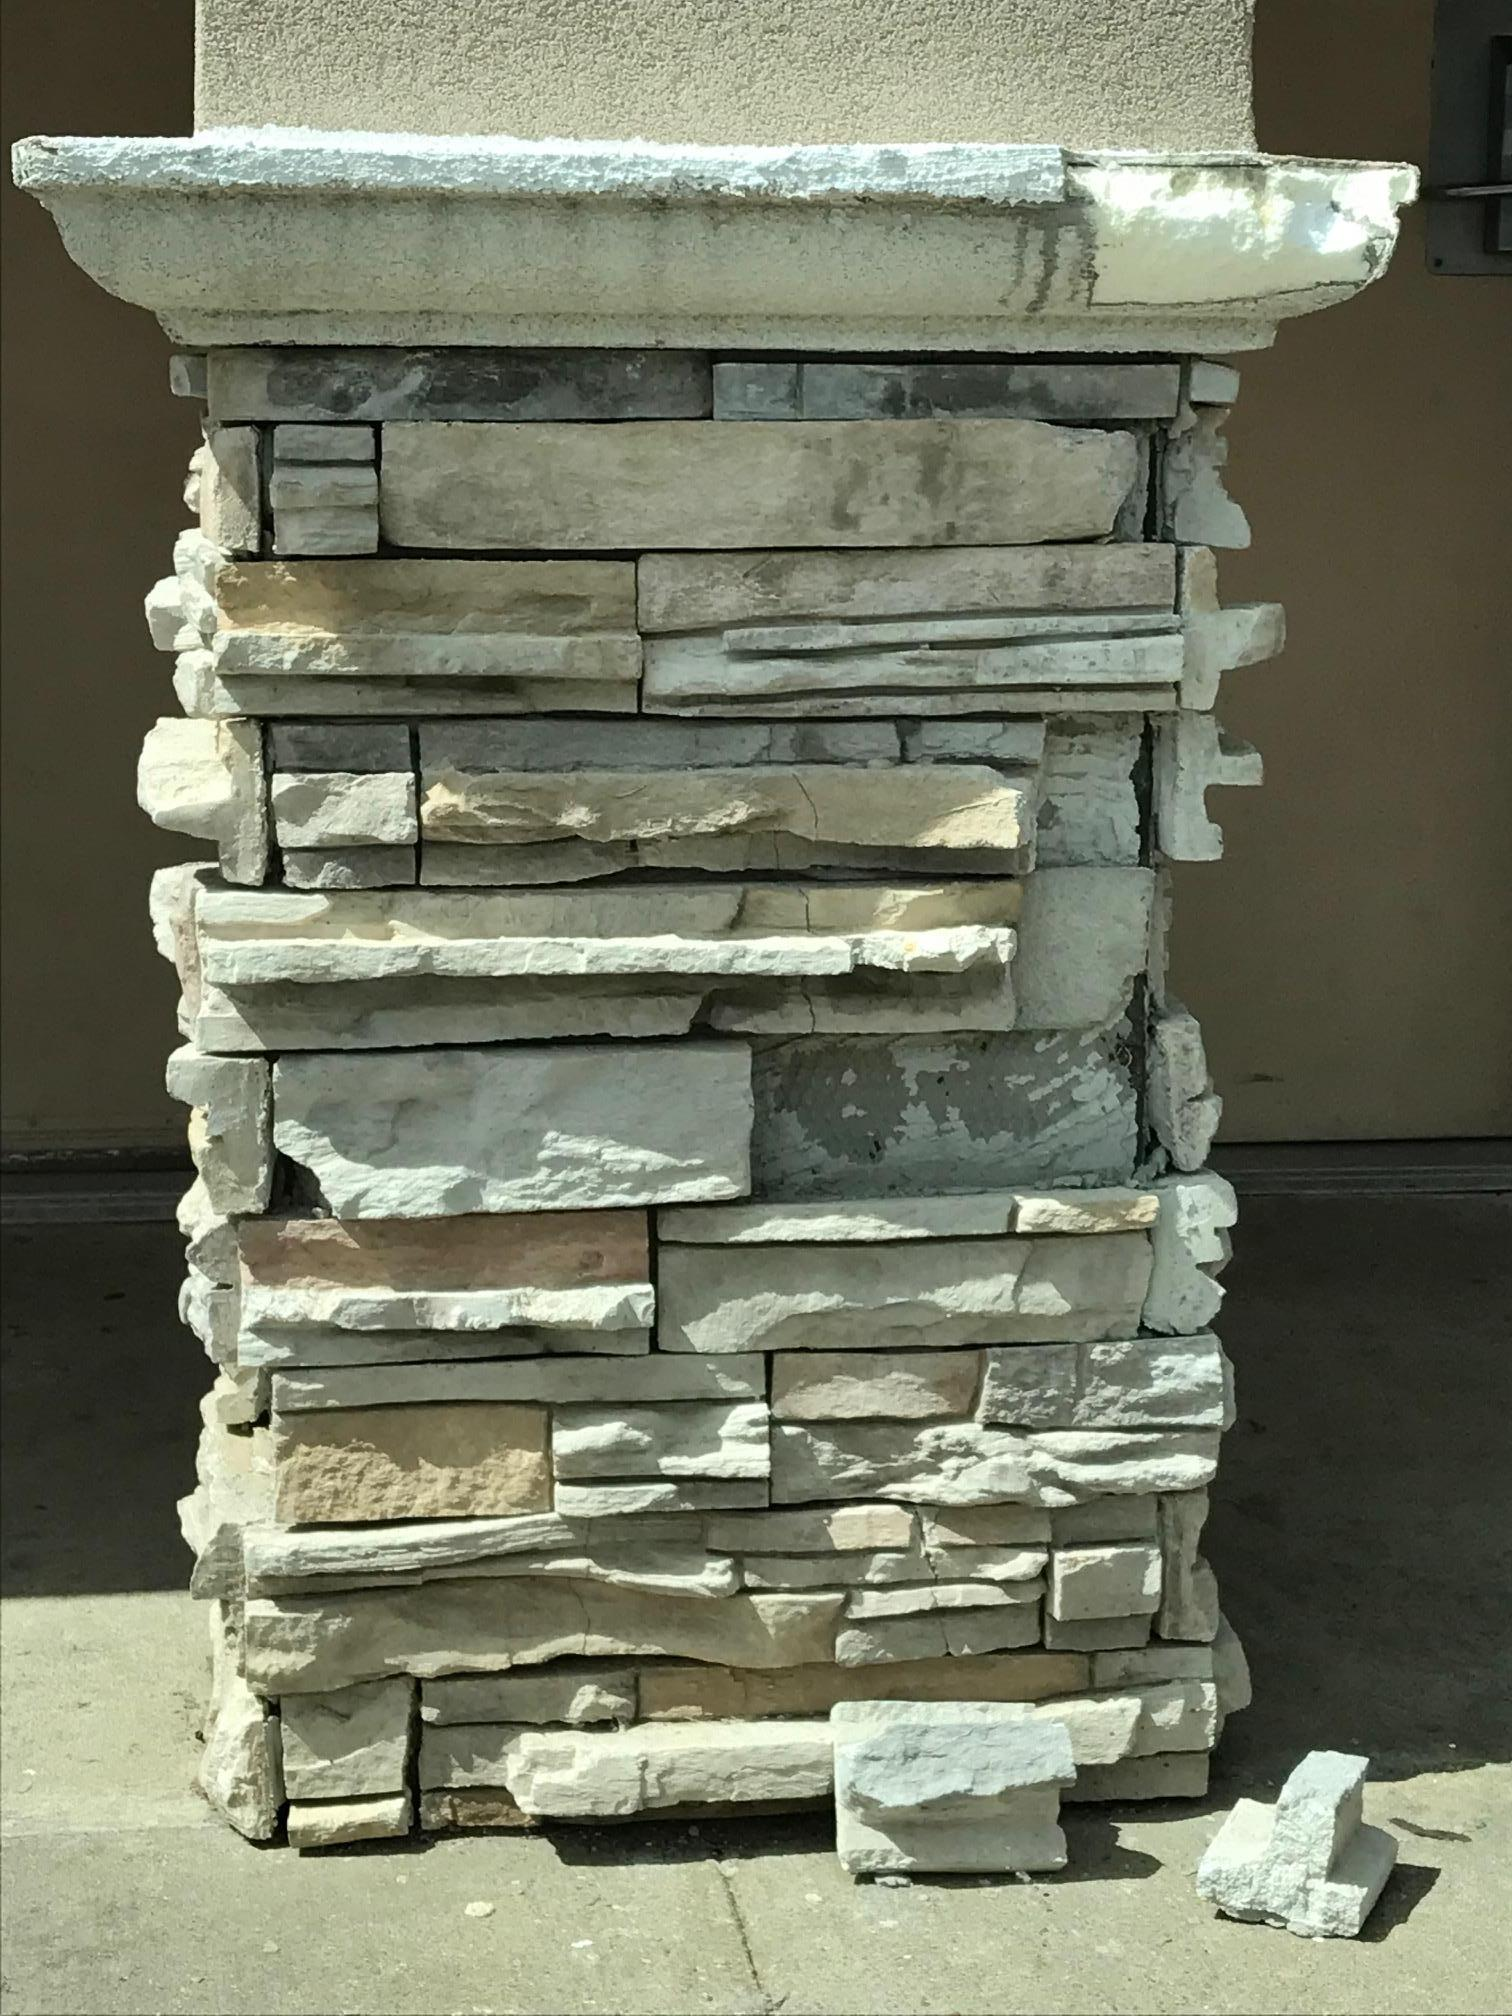 Column with stone falling off